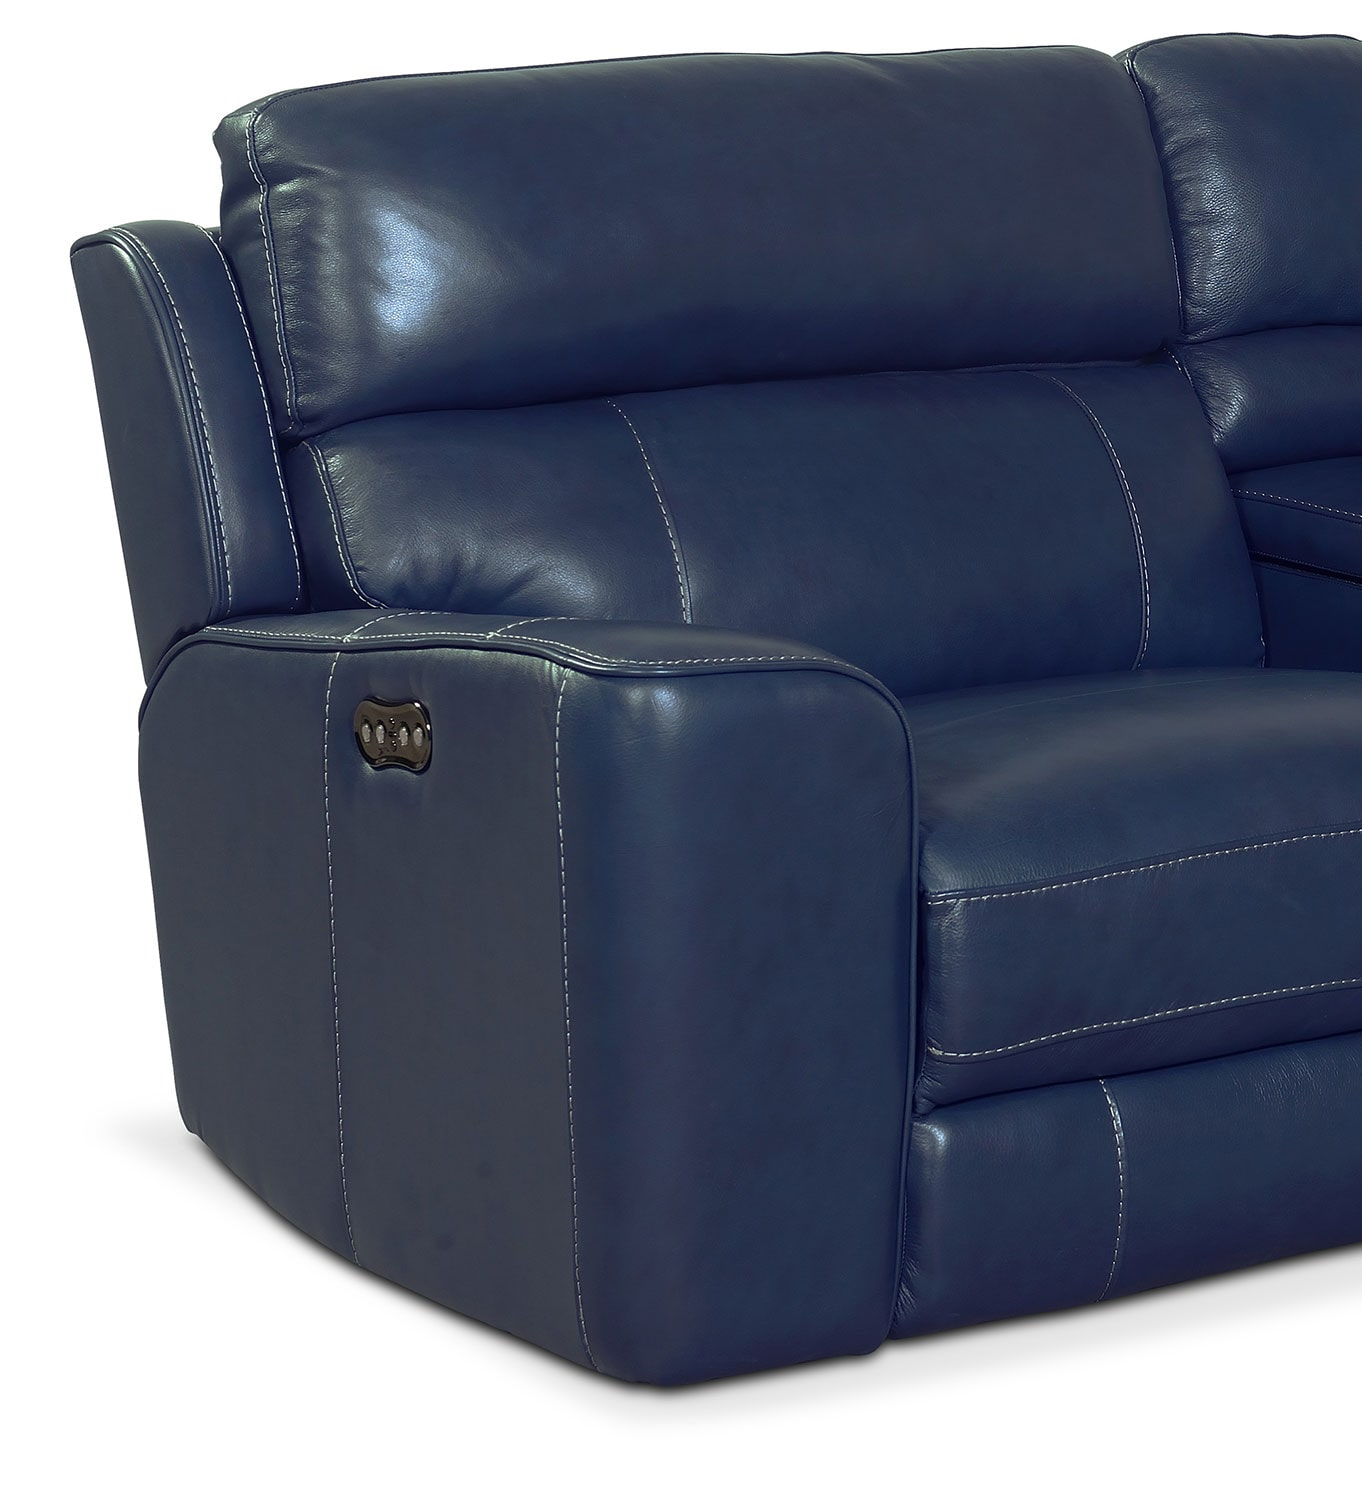 Blue reclining sofa pulsar dual reclining sofa and for Blue leather reclining sofa